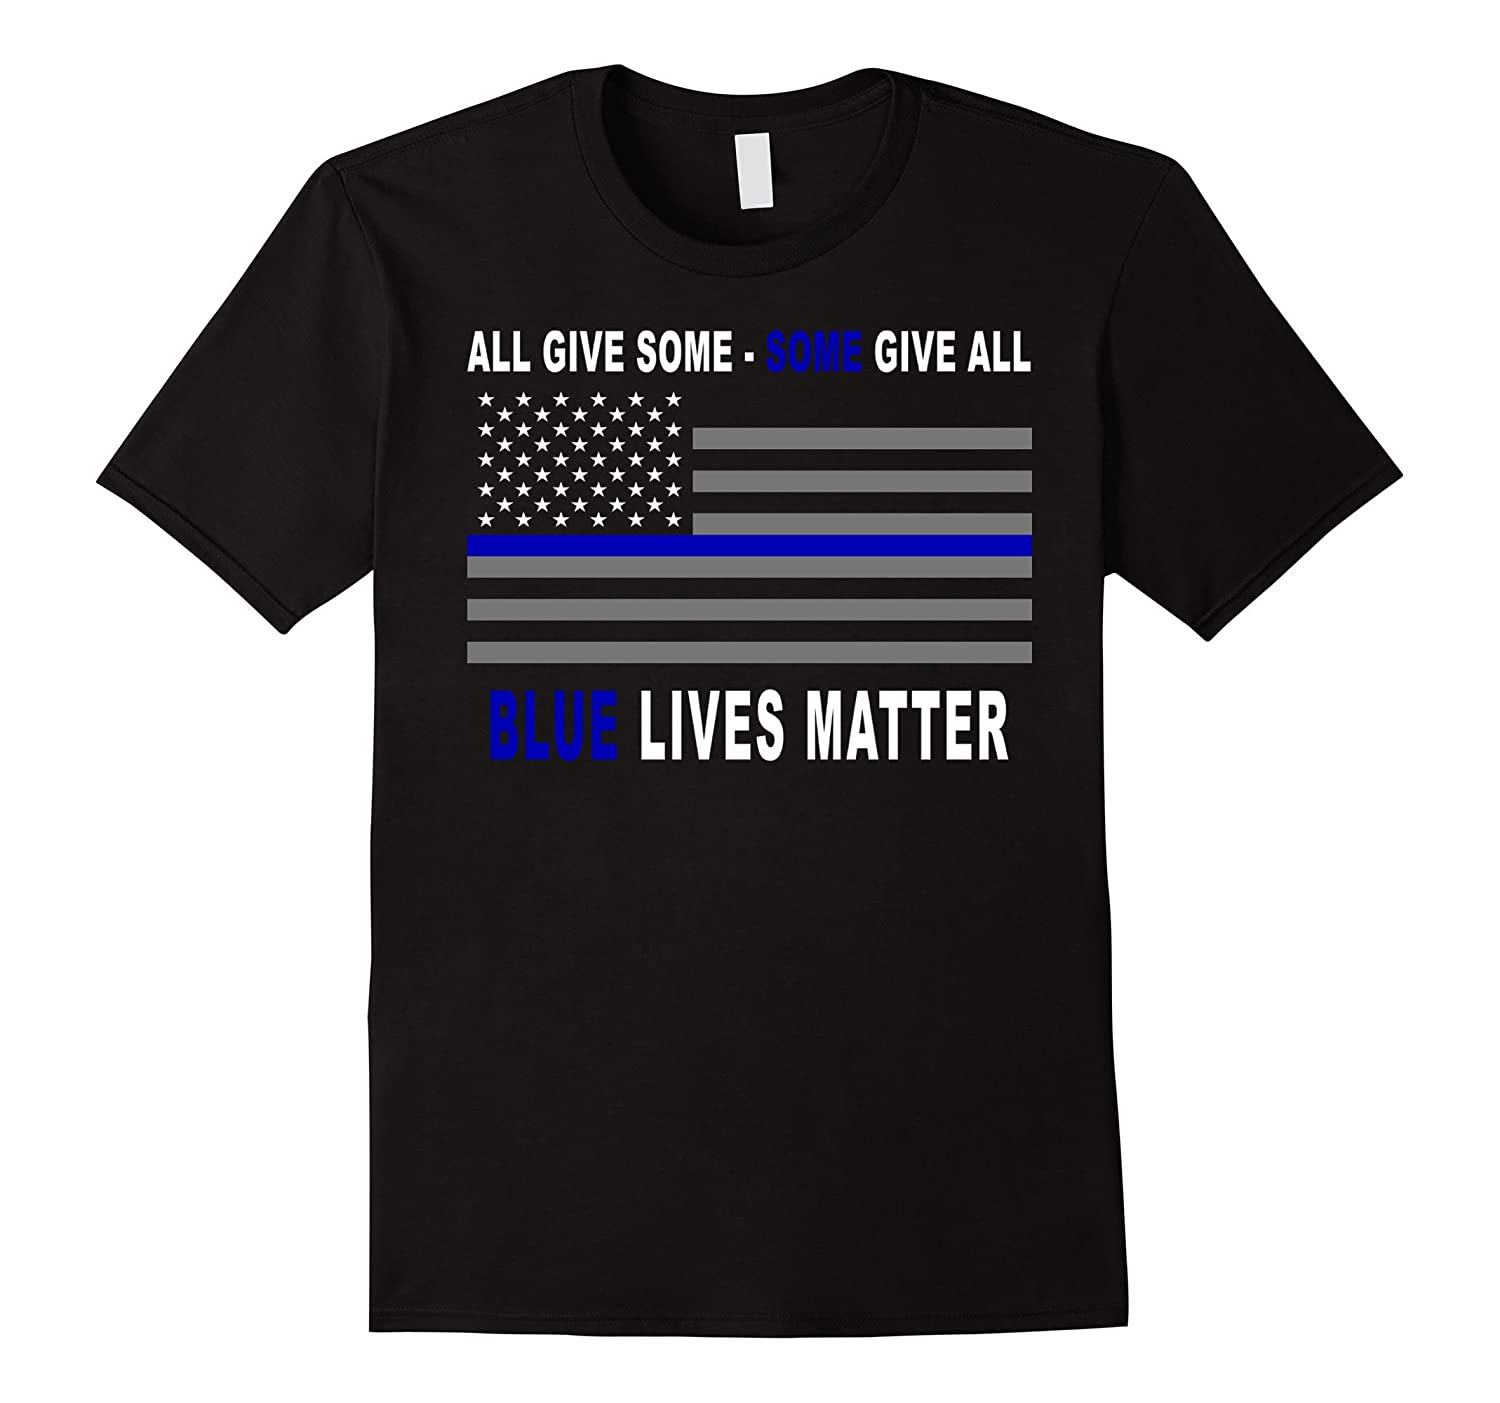 Blue Lives Matter Shirt - Thin blue line - Some give ALL-RT